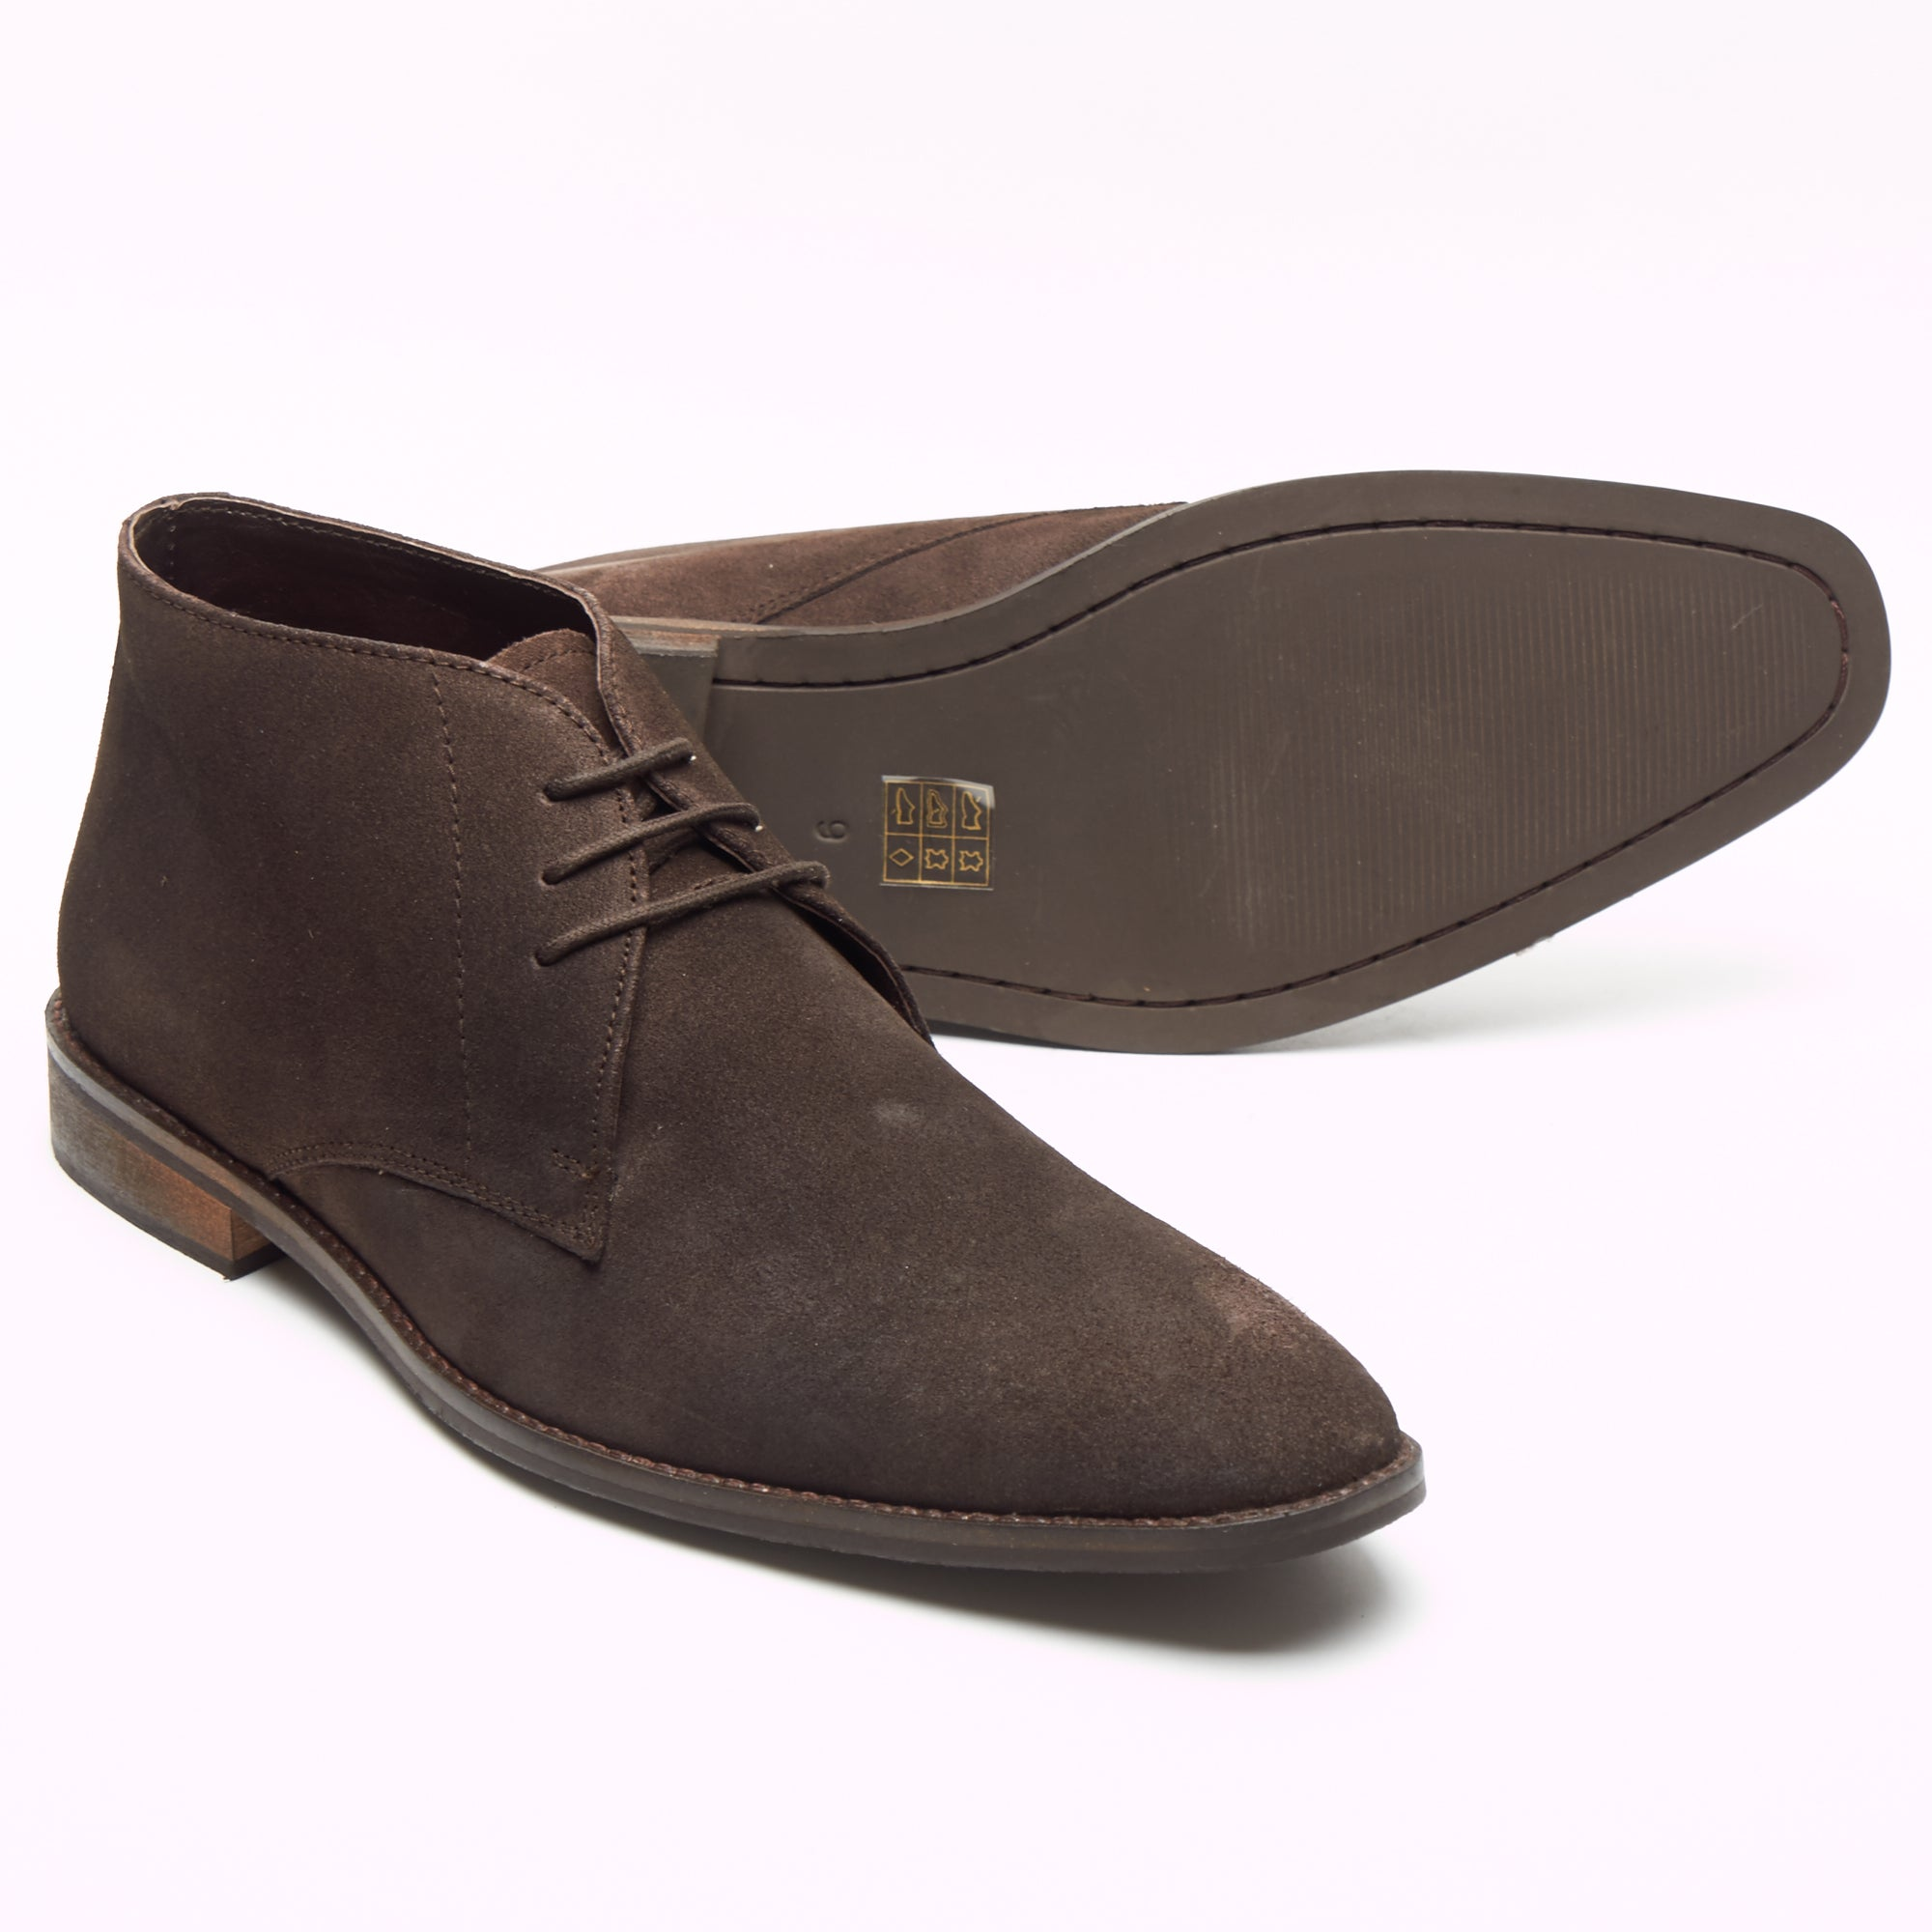 Mens Suede Ankle Boots - SF-251-Suede Brown